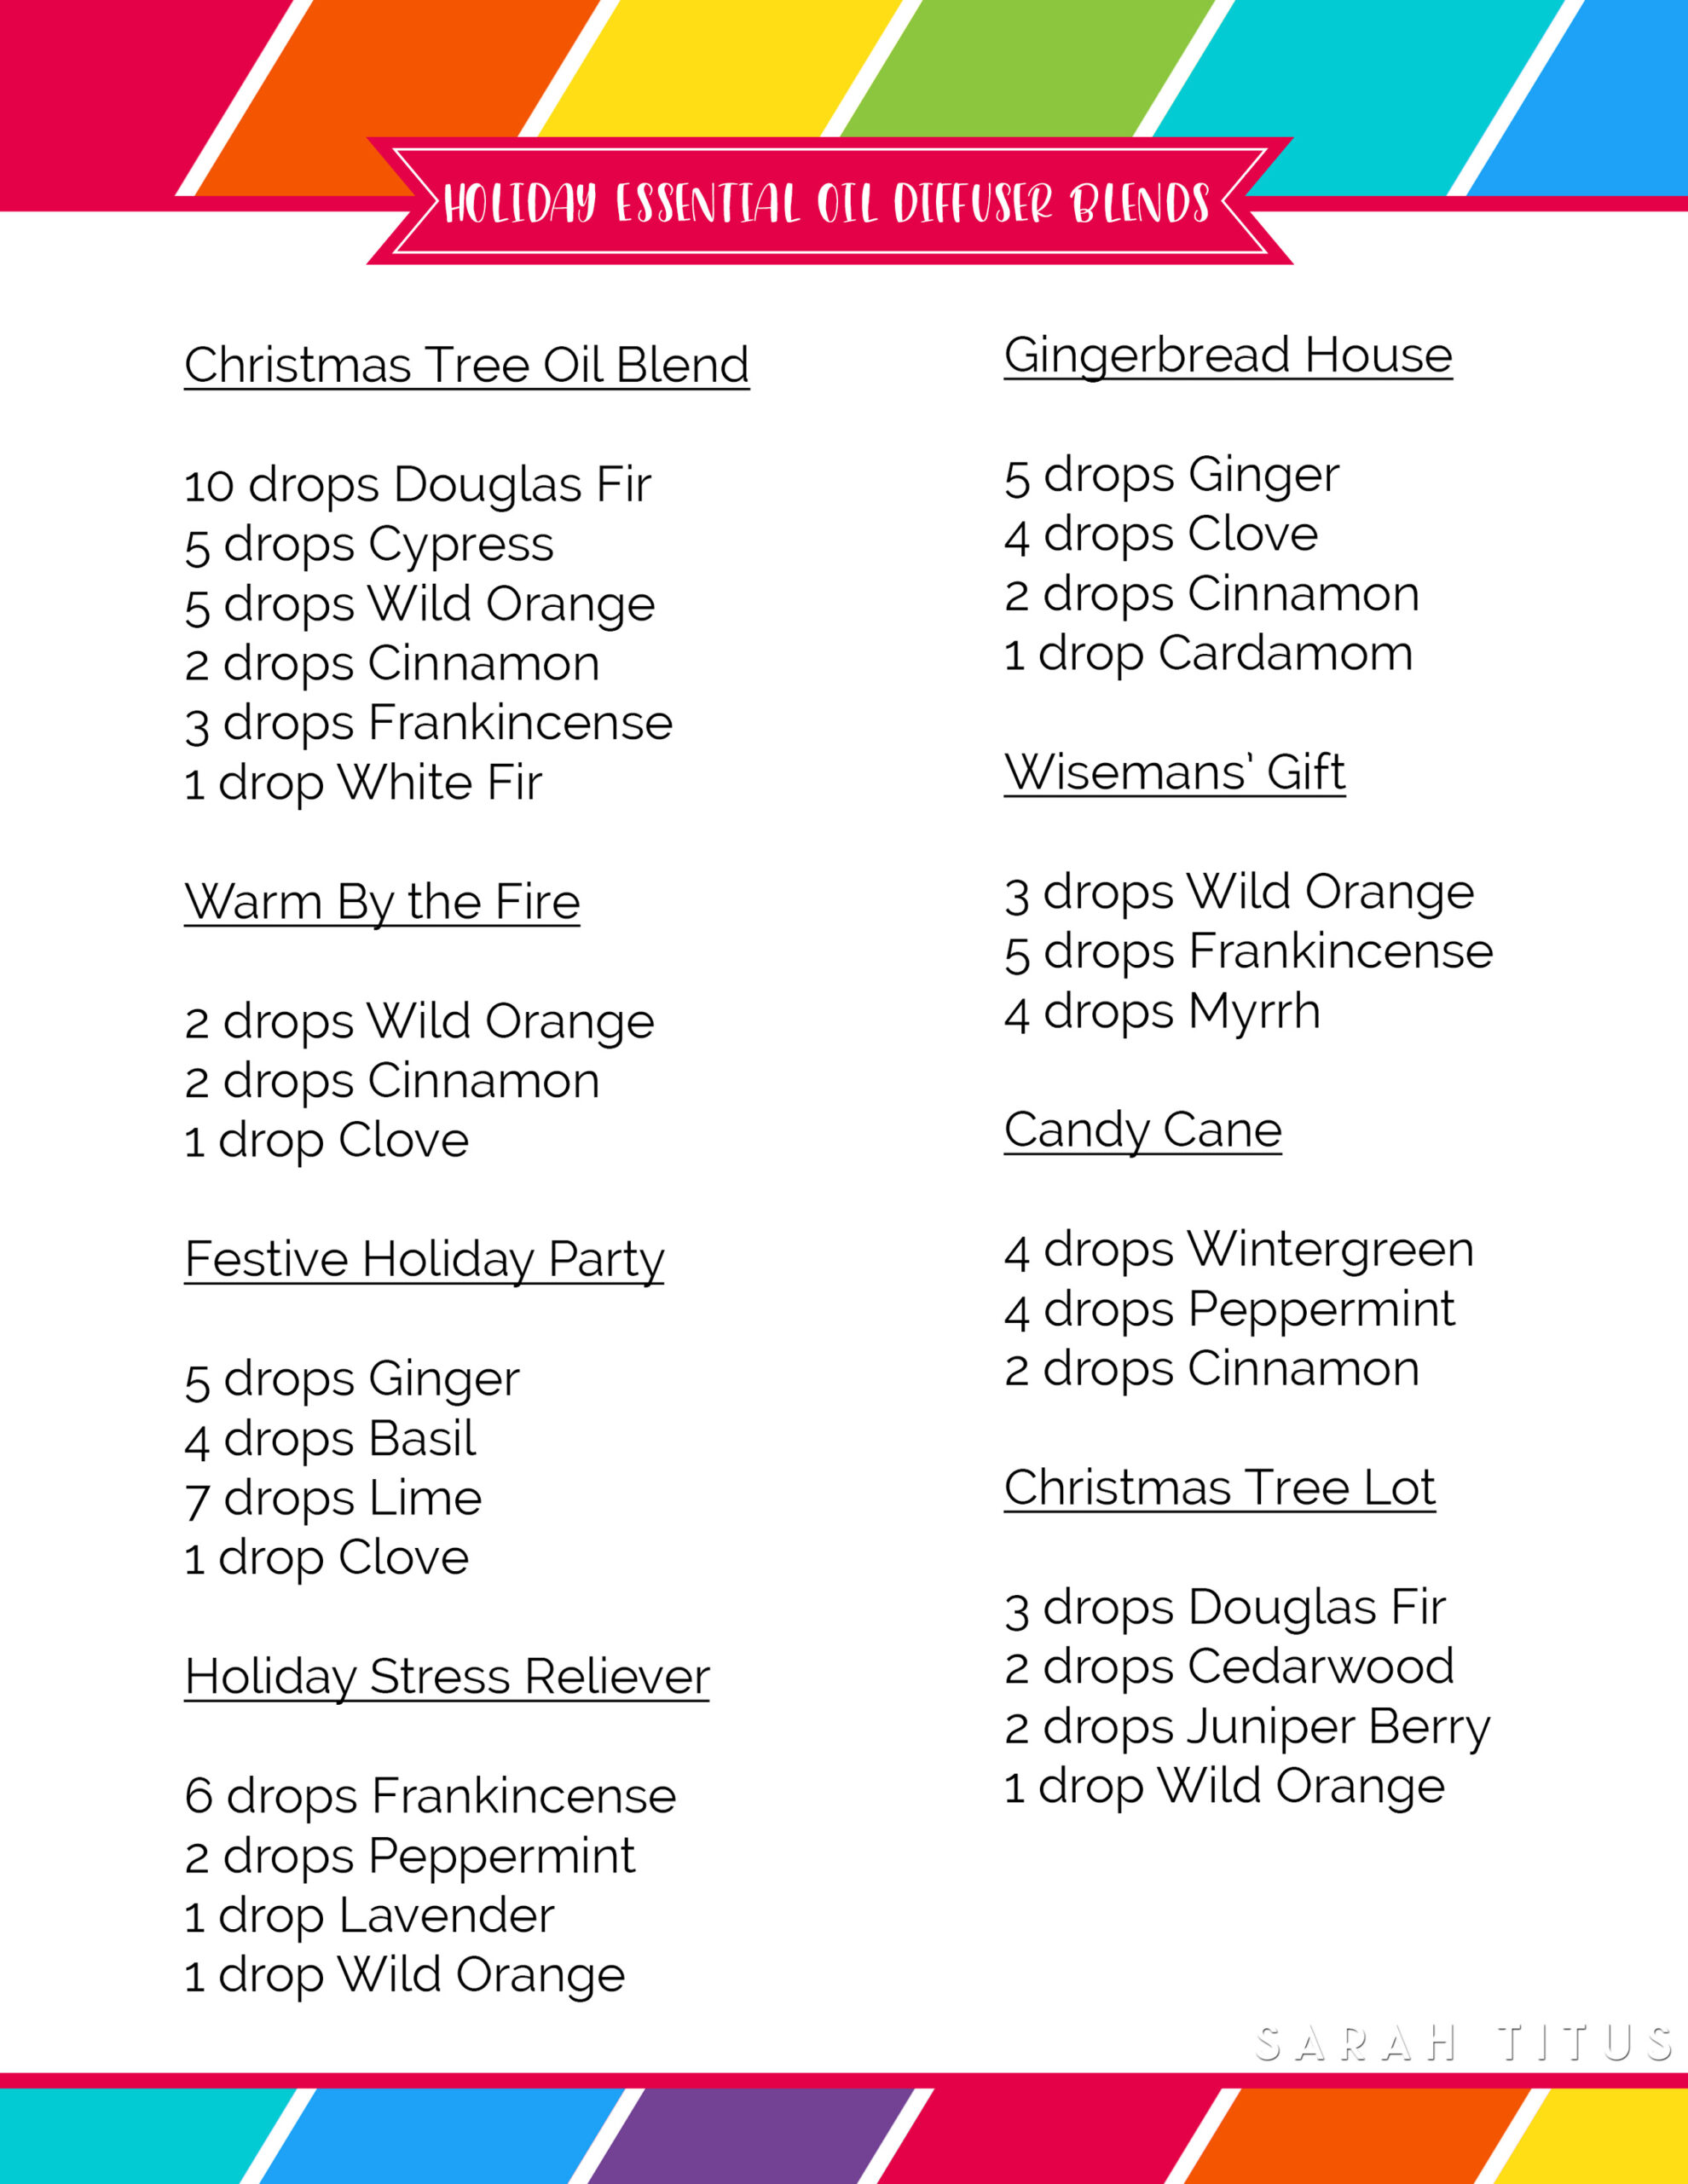 Get into the Christmas spirit with these fun holiday diffuser essential oil blends! #essentialoilblendsrecipes #essentialoilrecipes